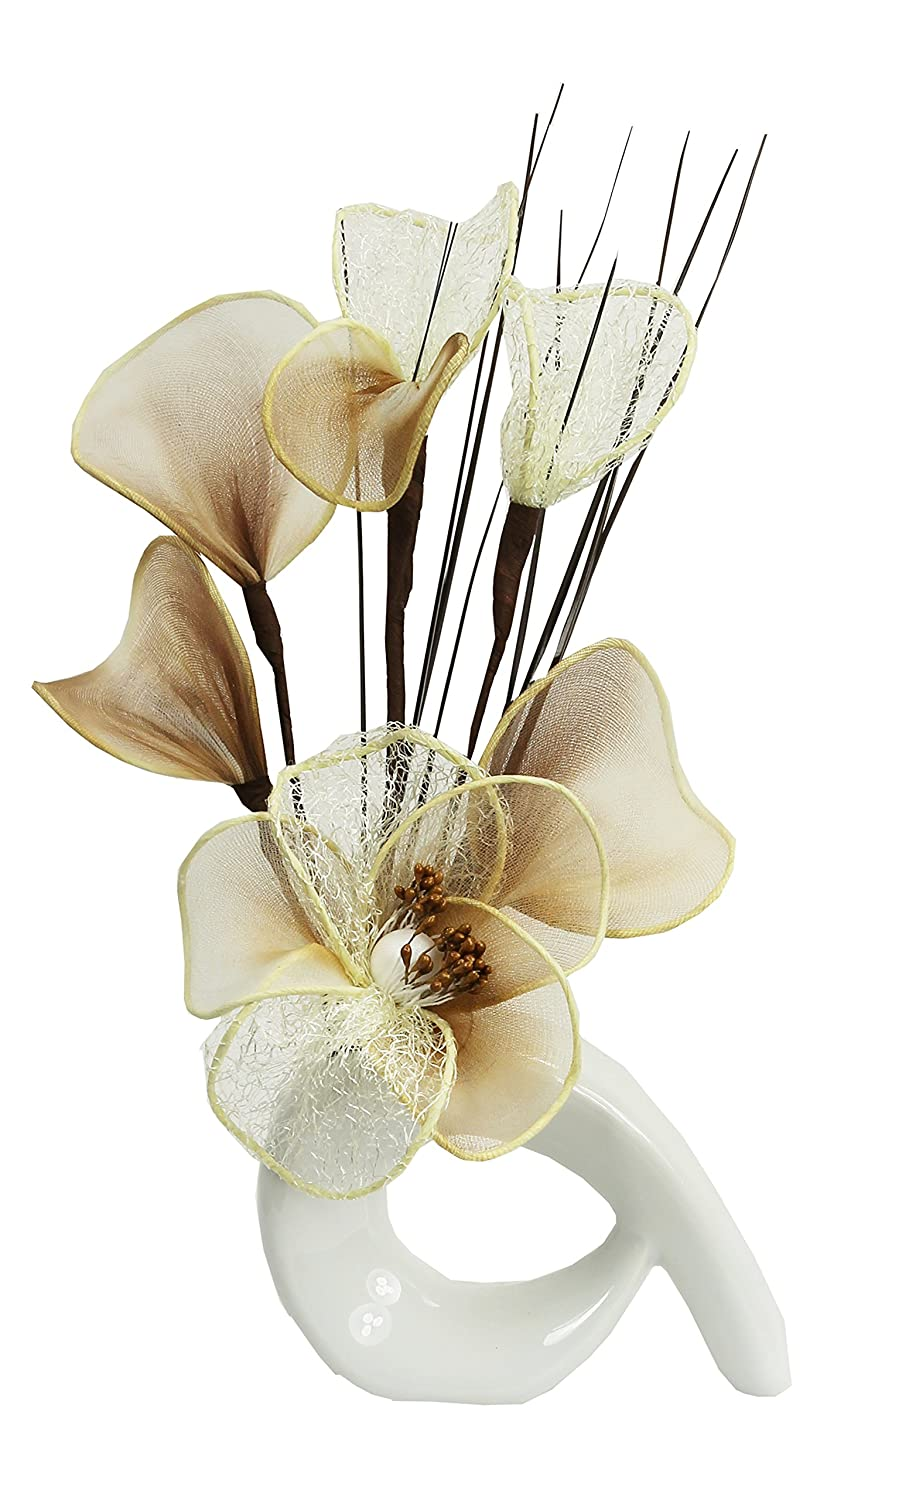 White Vase with Cream and Coffee Artificial Flowers, Ornaments for Living Room, Window Sill, Home Accessories, 32cm Flourish 792640